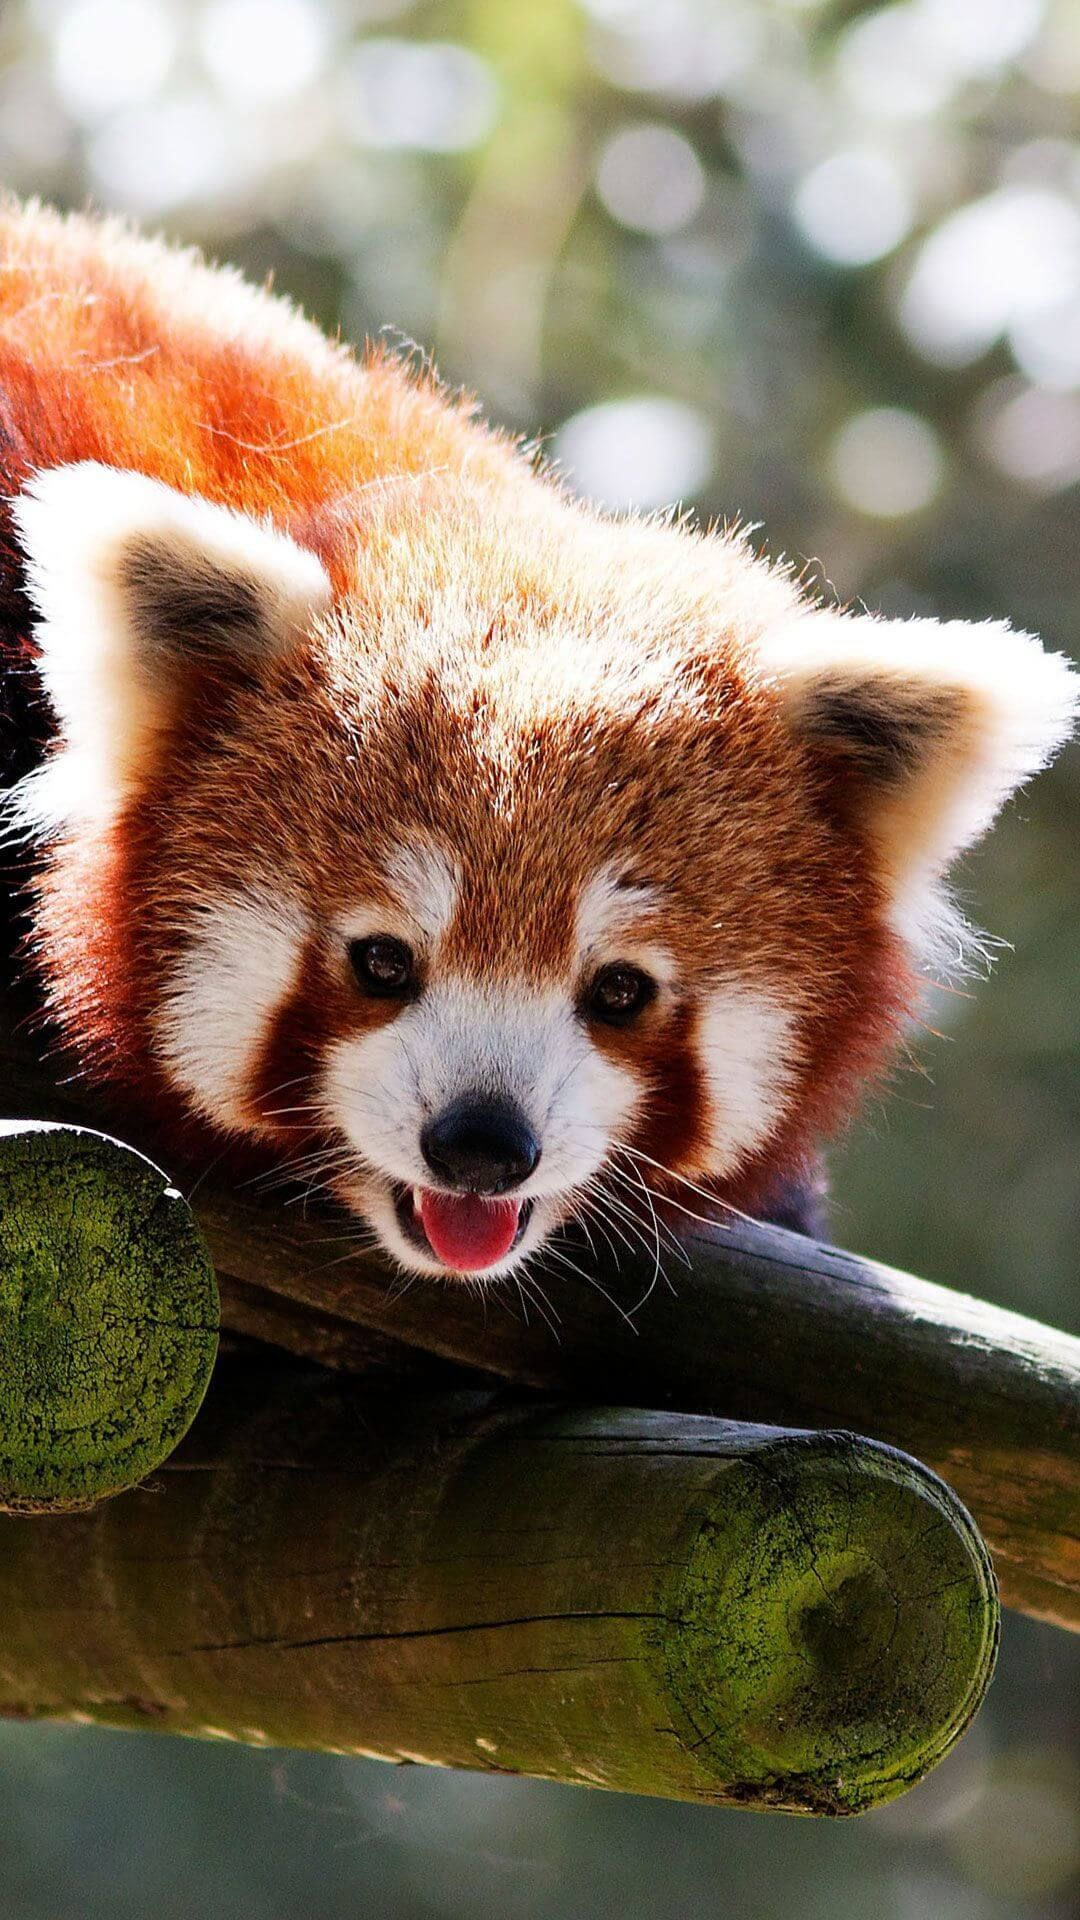 Cute Baby Red Pandas Wallpaper IPhone HD